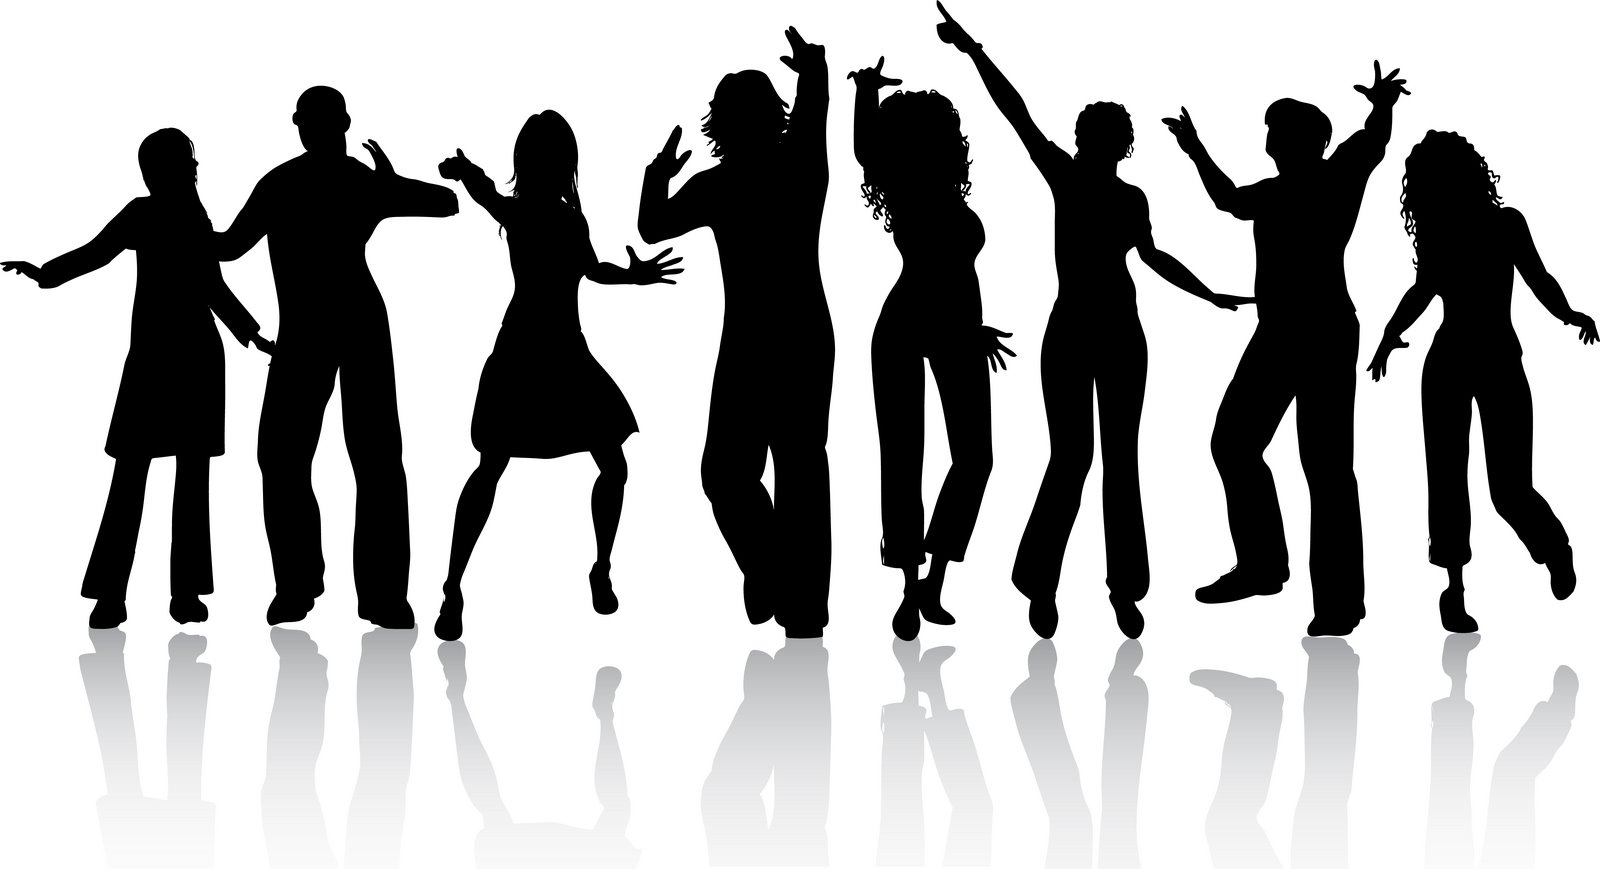 Club clipart group dancing Free Clipart Dancer  Download